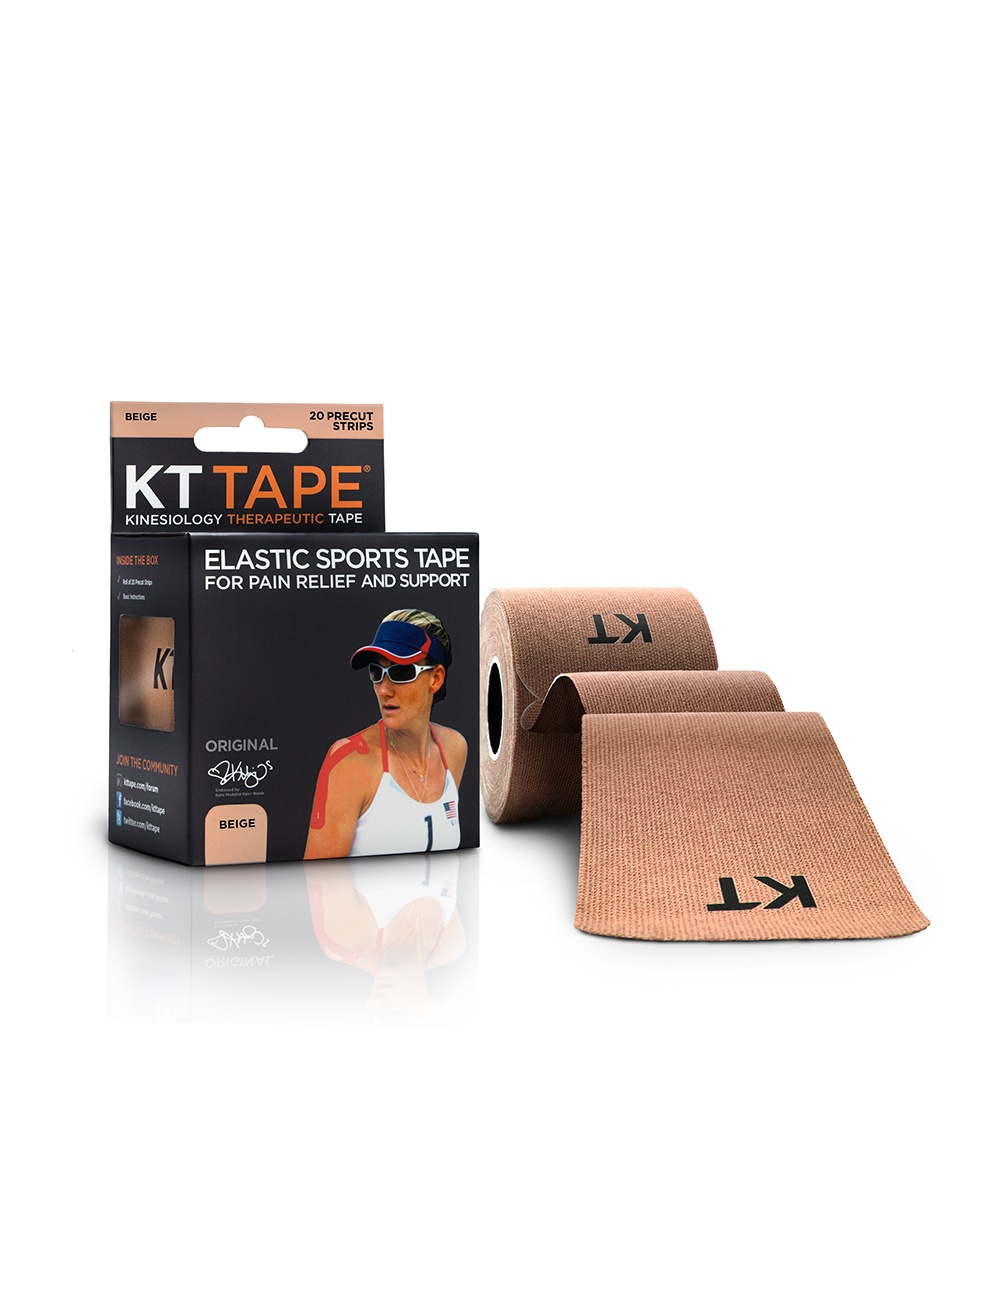 KT Tape Original Cotton 20 Precut Strips - Beige